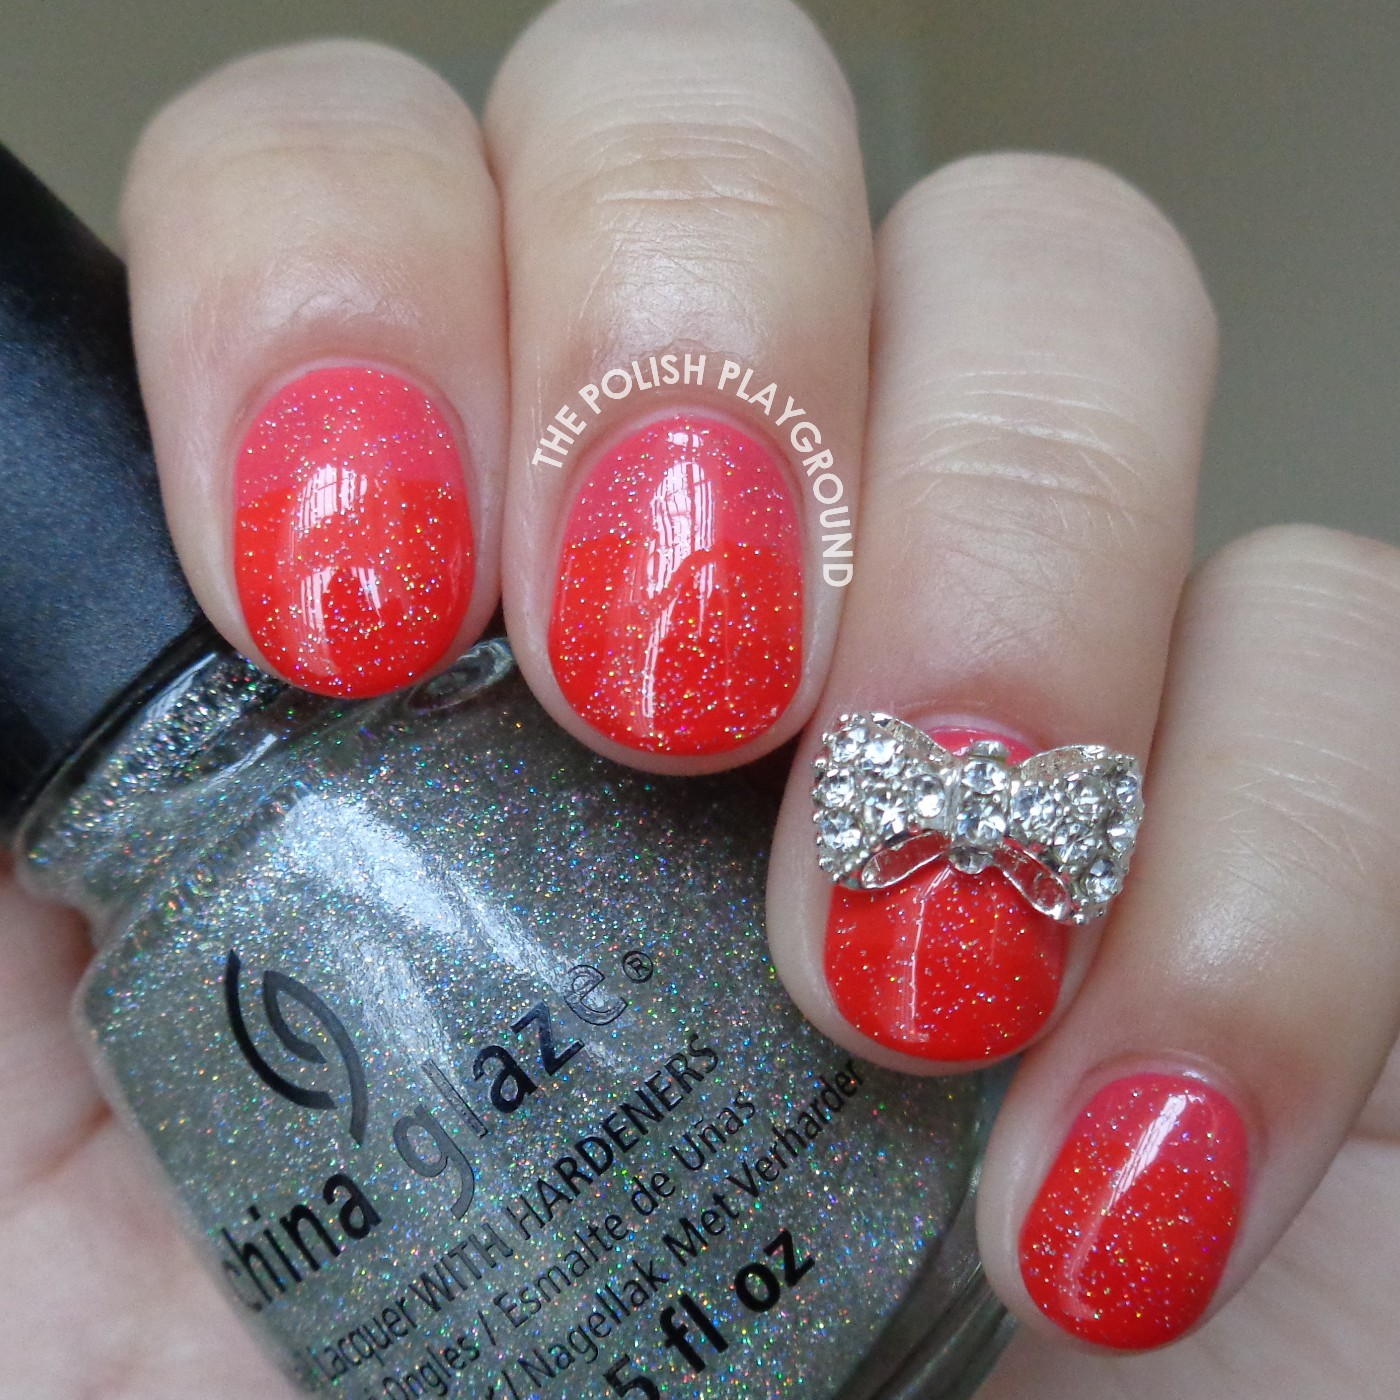 Monochromatic Pinky Red Stripe Gradient with Bow Stud Accent Nail Art